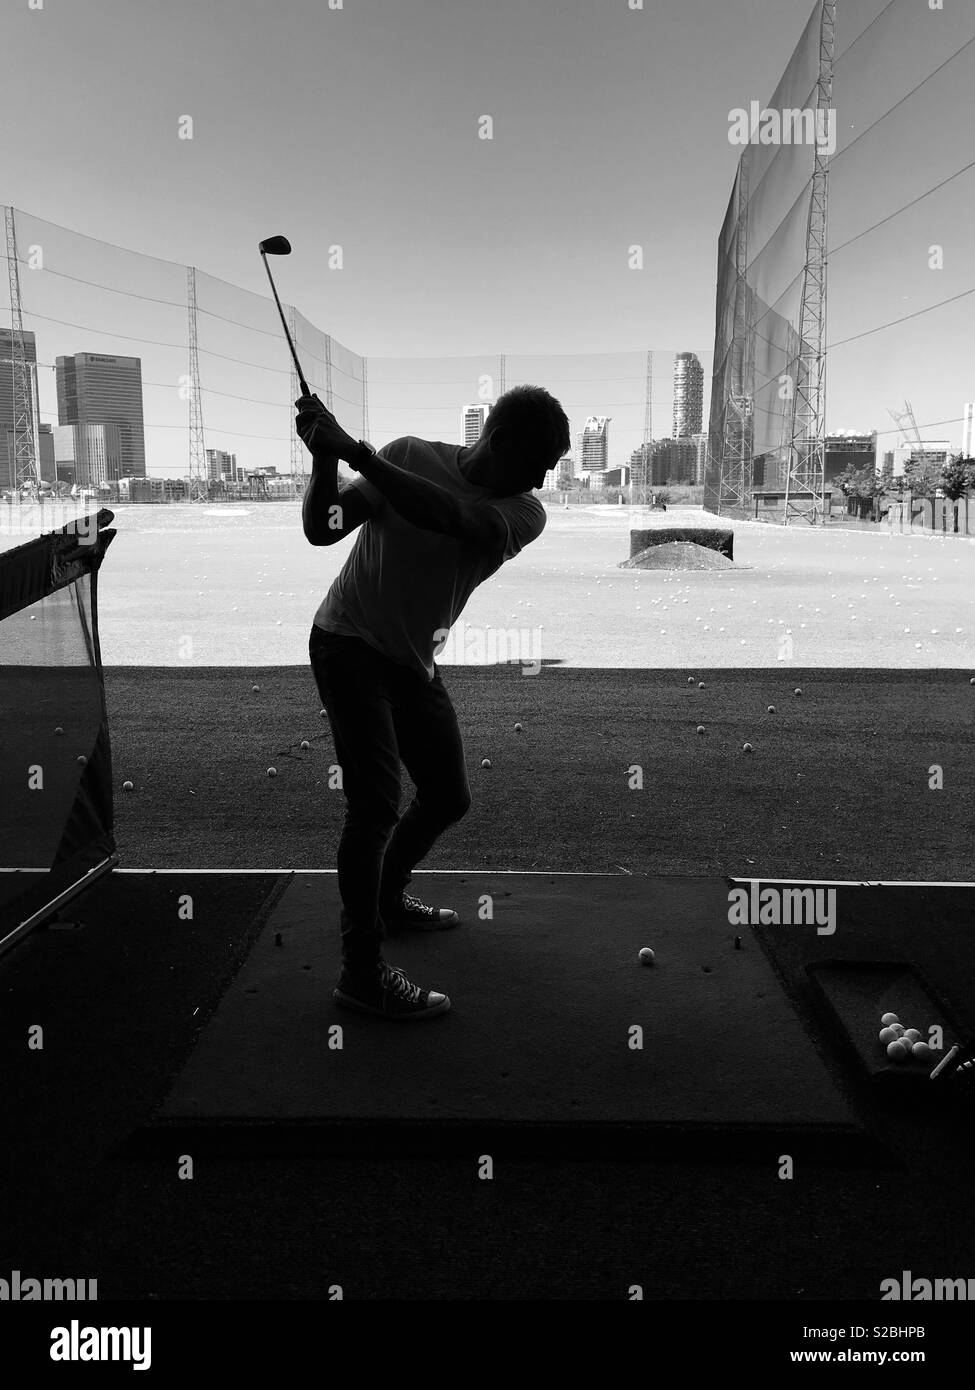 Backswing at the driving range in London - Stock Image